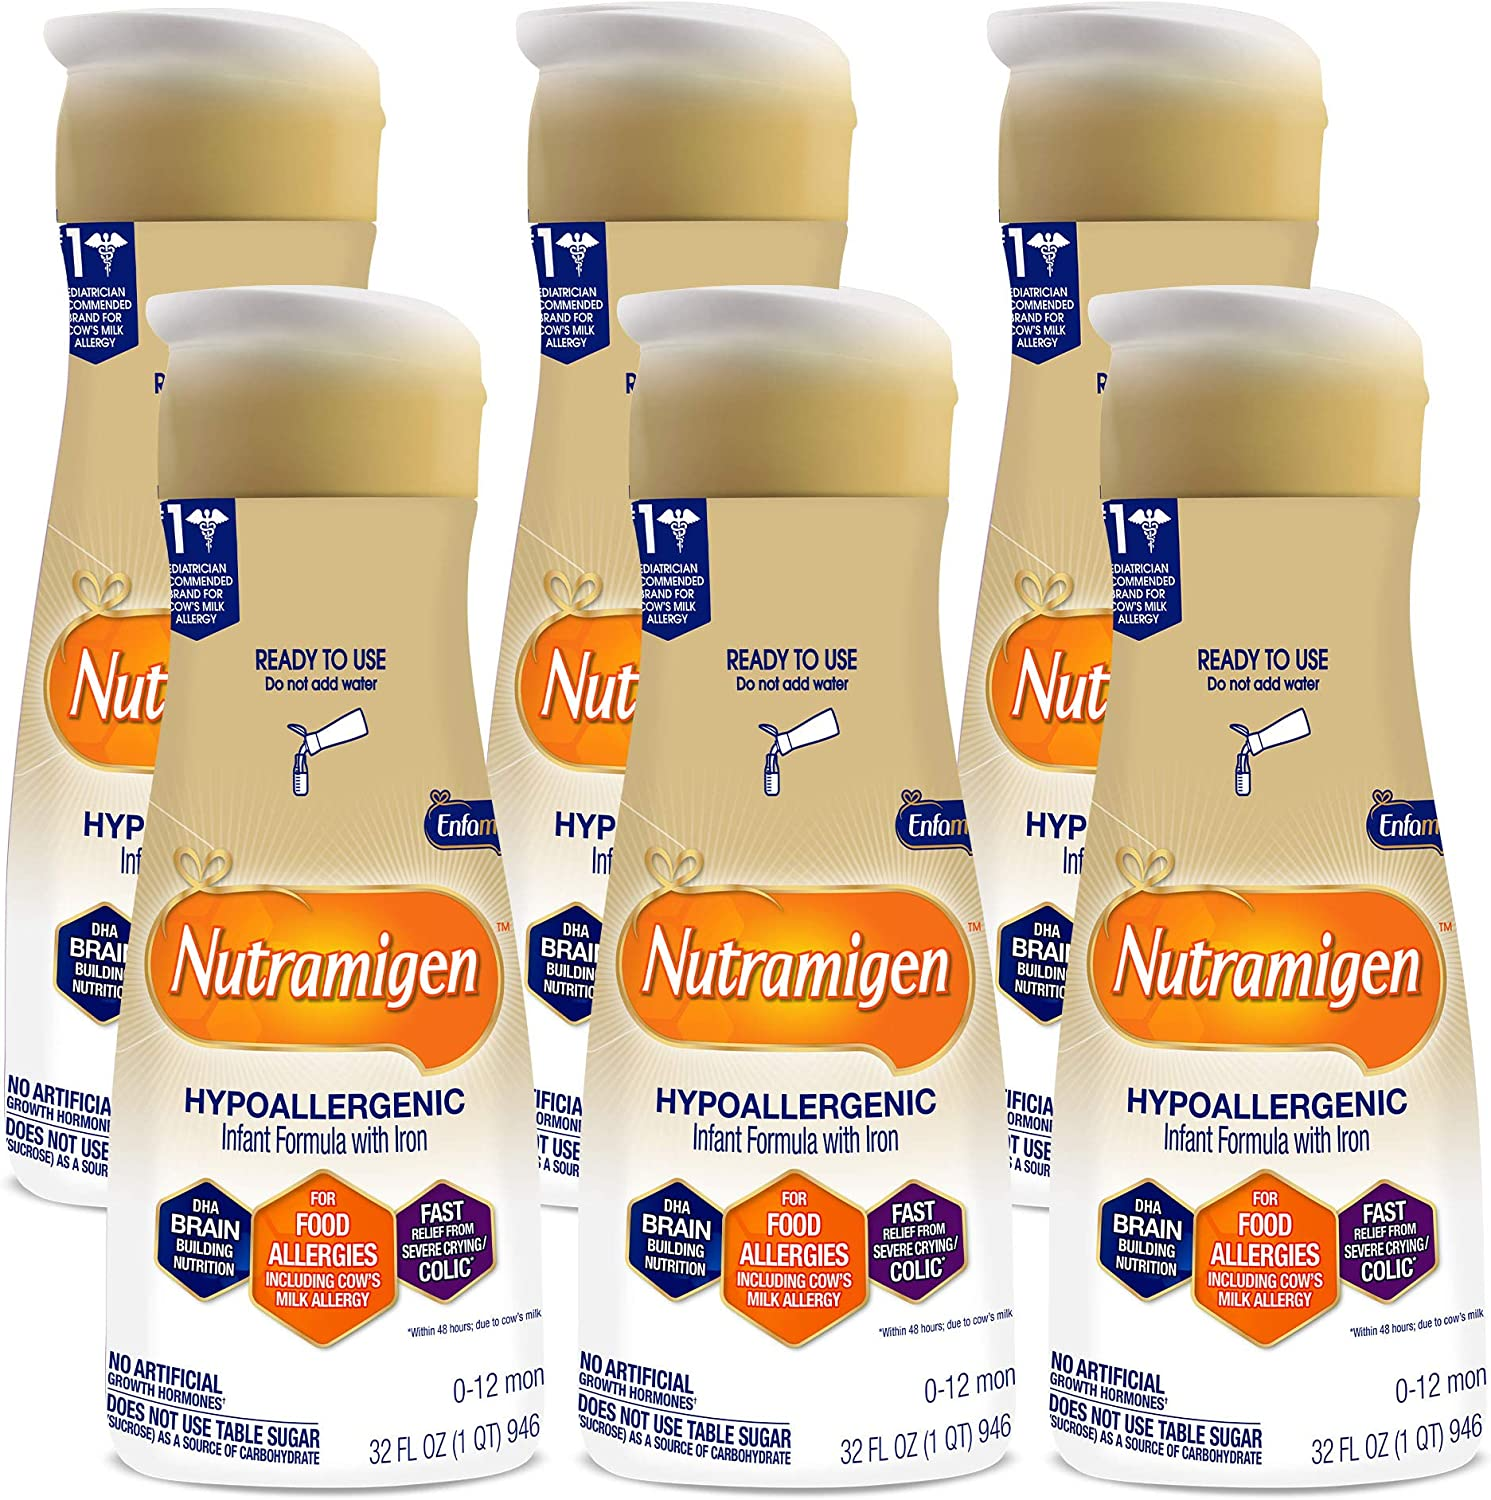 Enfamil Nutramigen Baby Formula, Hypoallergenic, Lactose Free Formula with Enflora LGG, Fast Relief from Crying & Colic, DHA for Brain Support, Ready to Feed Bottle, 32 Fl Oz (Pack of 6) Total 192 Oz